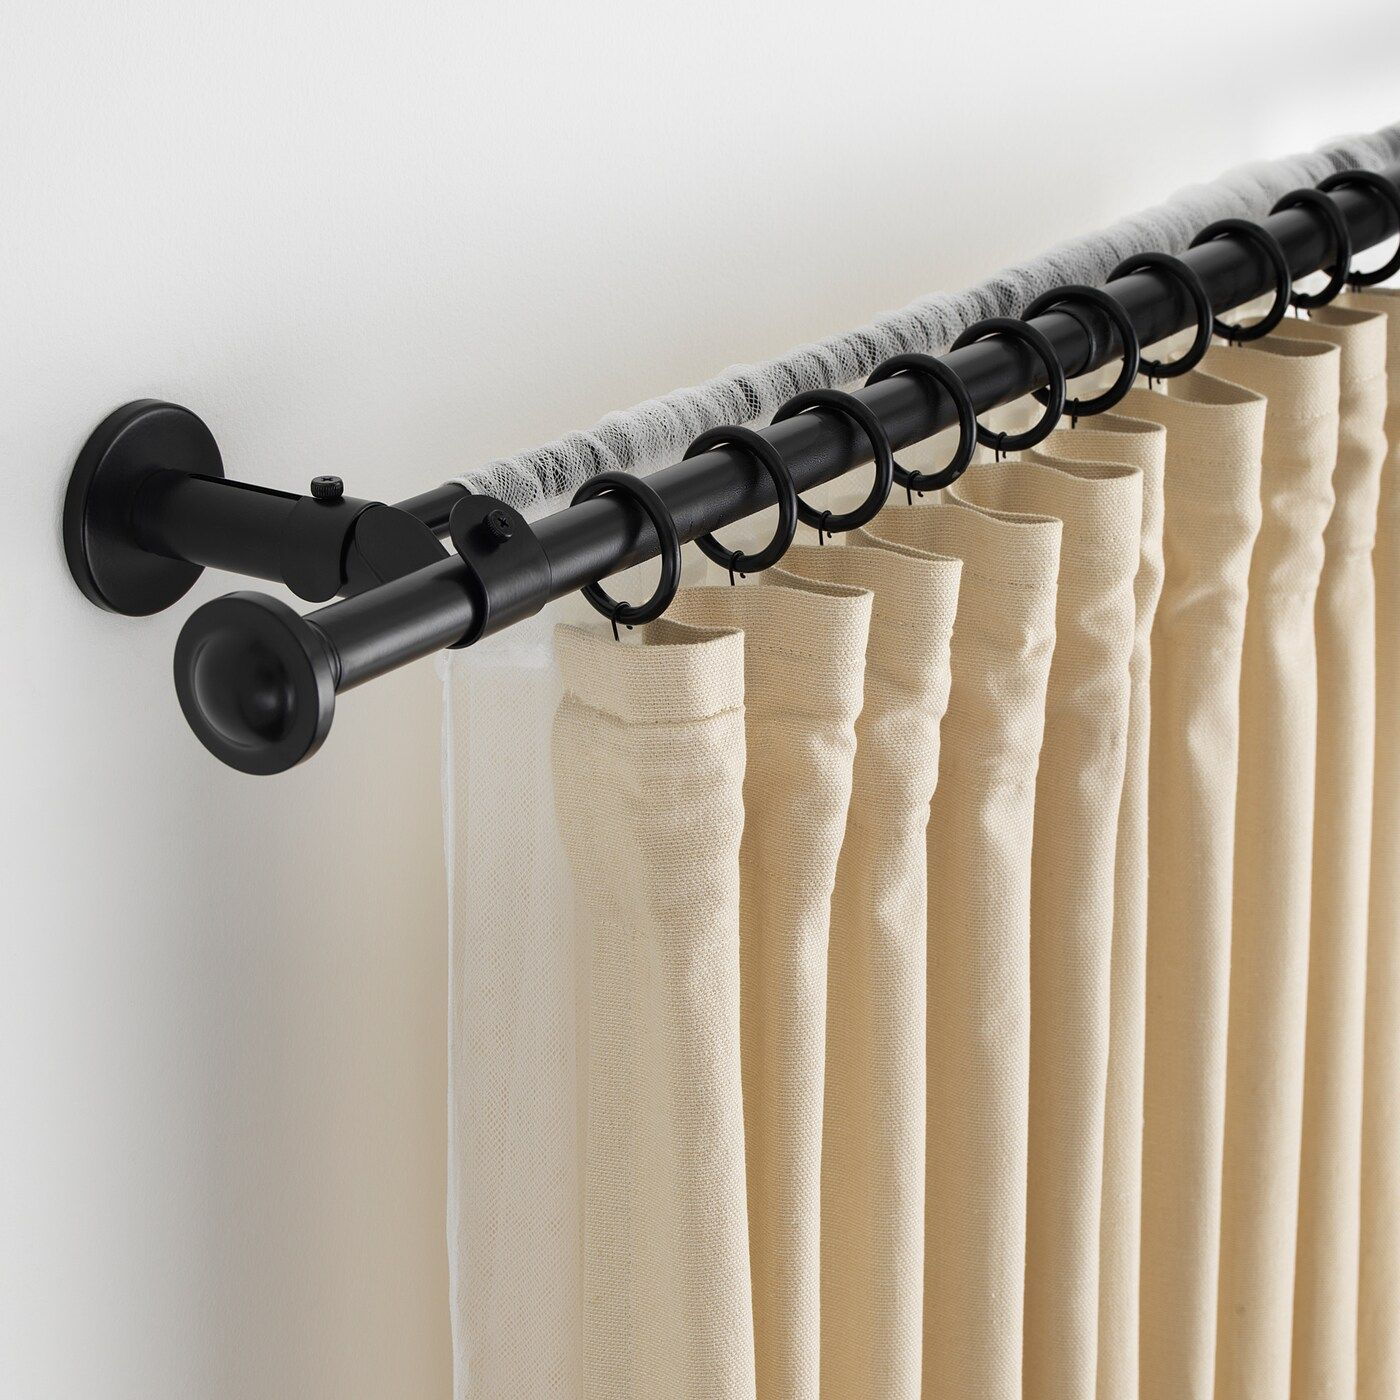 Ikea Storslagen Double Curtain Rod Set Black In 2020 Double Curtains Double Curtain Rod Set Diy Curtain Rods